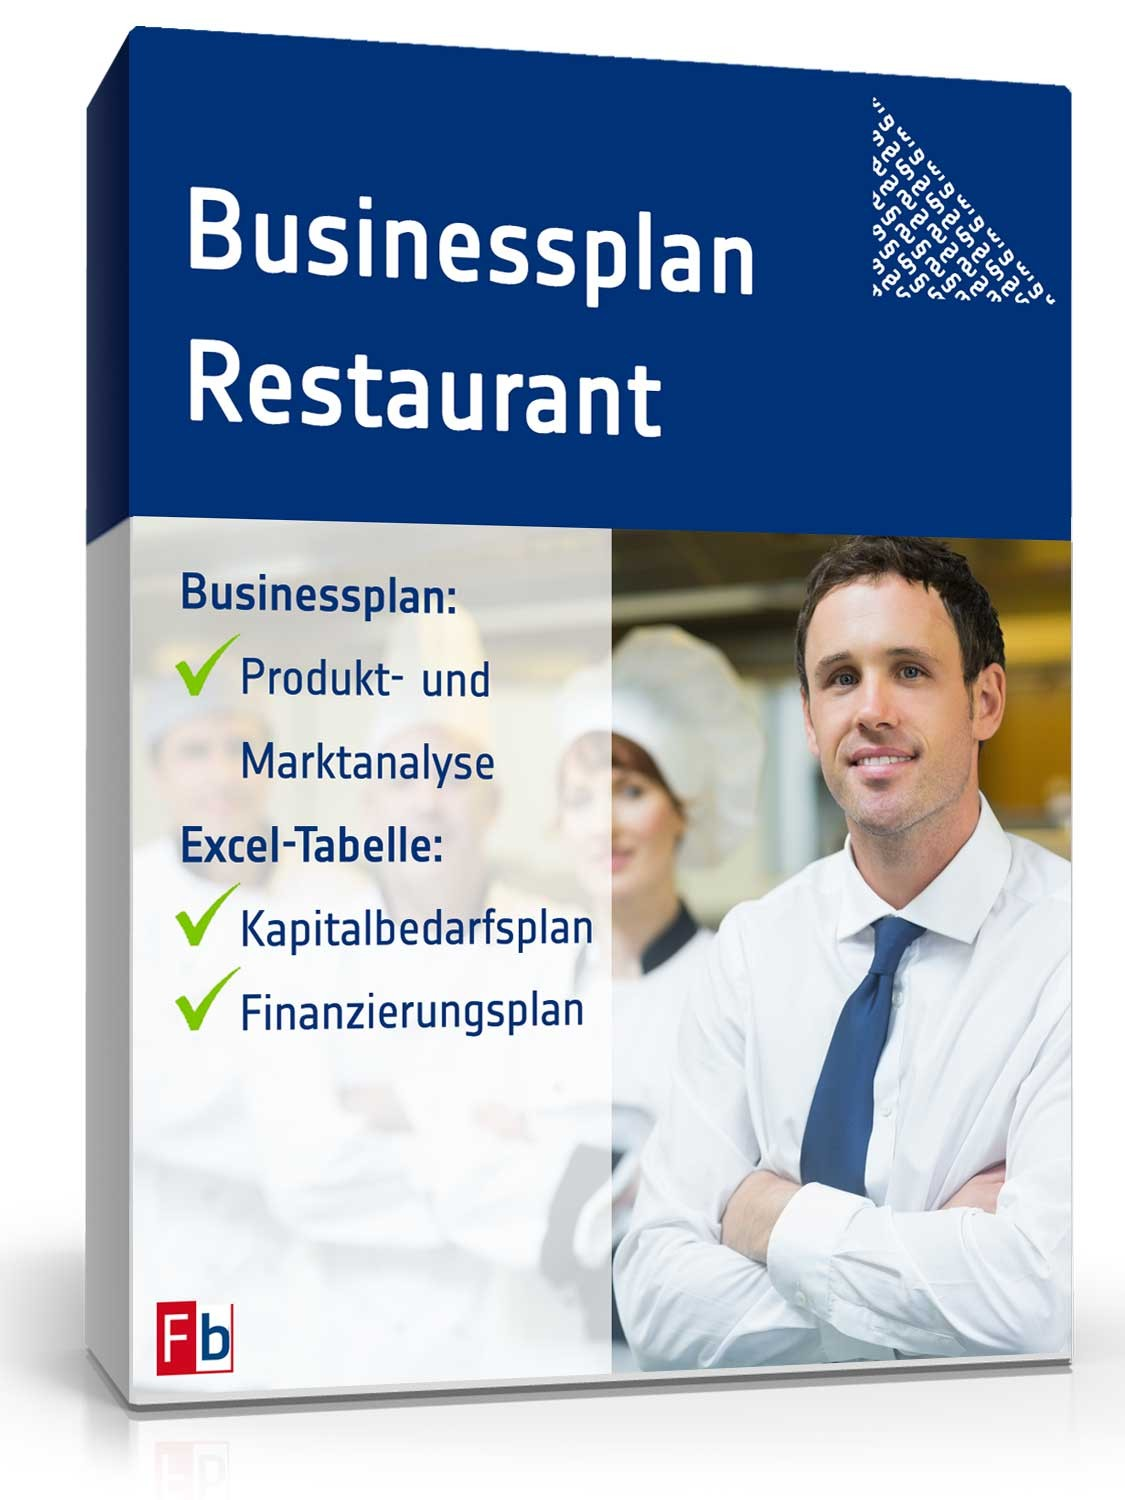 Businessplan Restaurant Muster Aus Profihand Zum Download